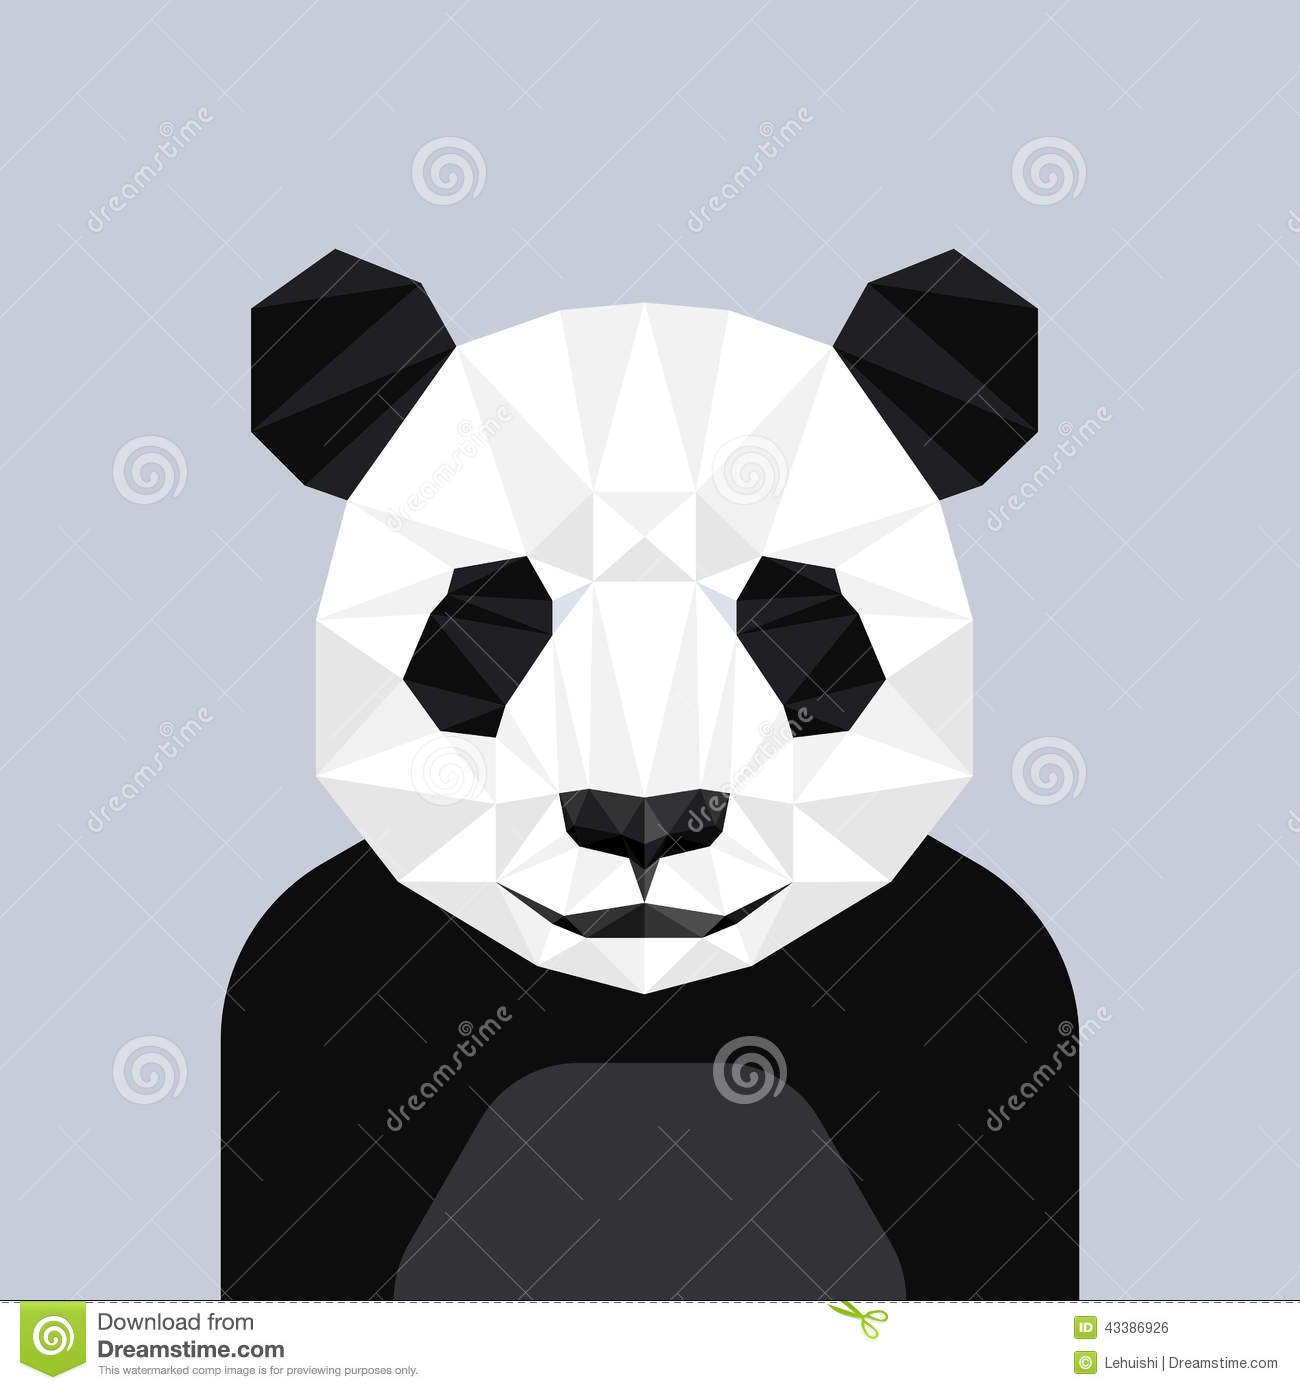 3d Geometric Shapes Wallpaper White Geometric Polygon Panda Head Triangle Pattern Stock